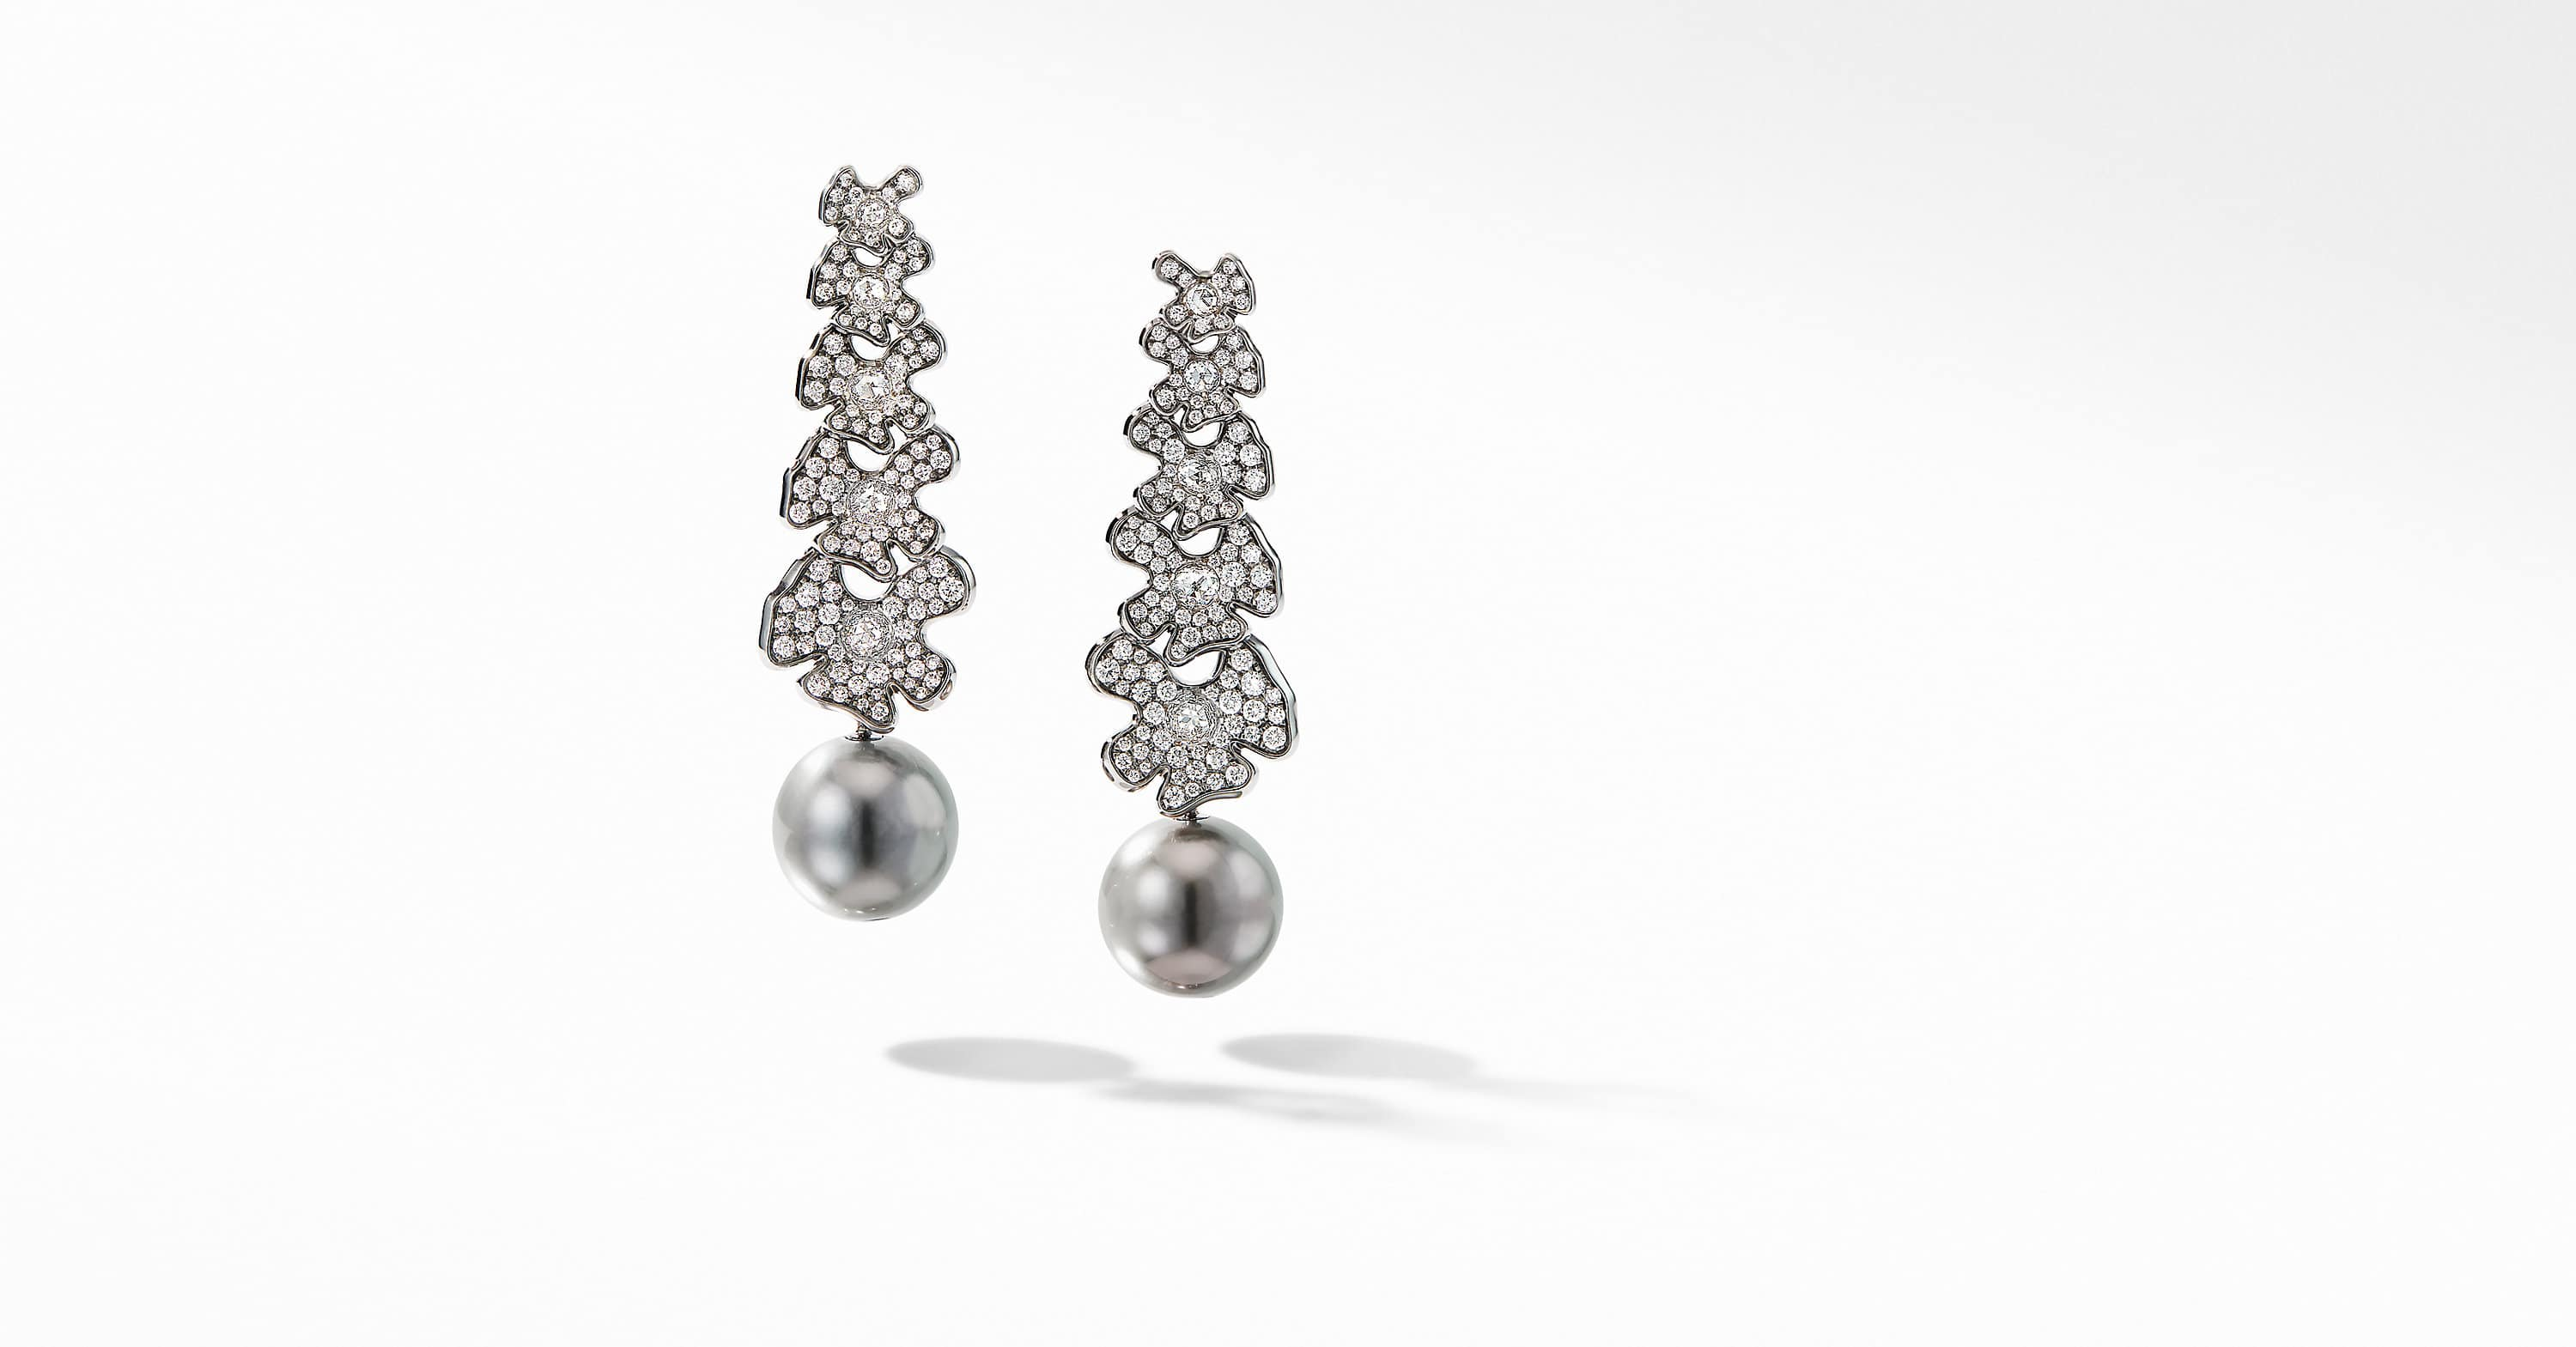 Night Petals Long Pearl Earrings in White Gold with Diamonds